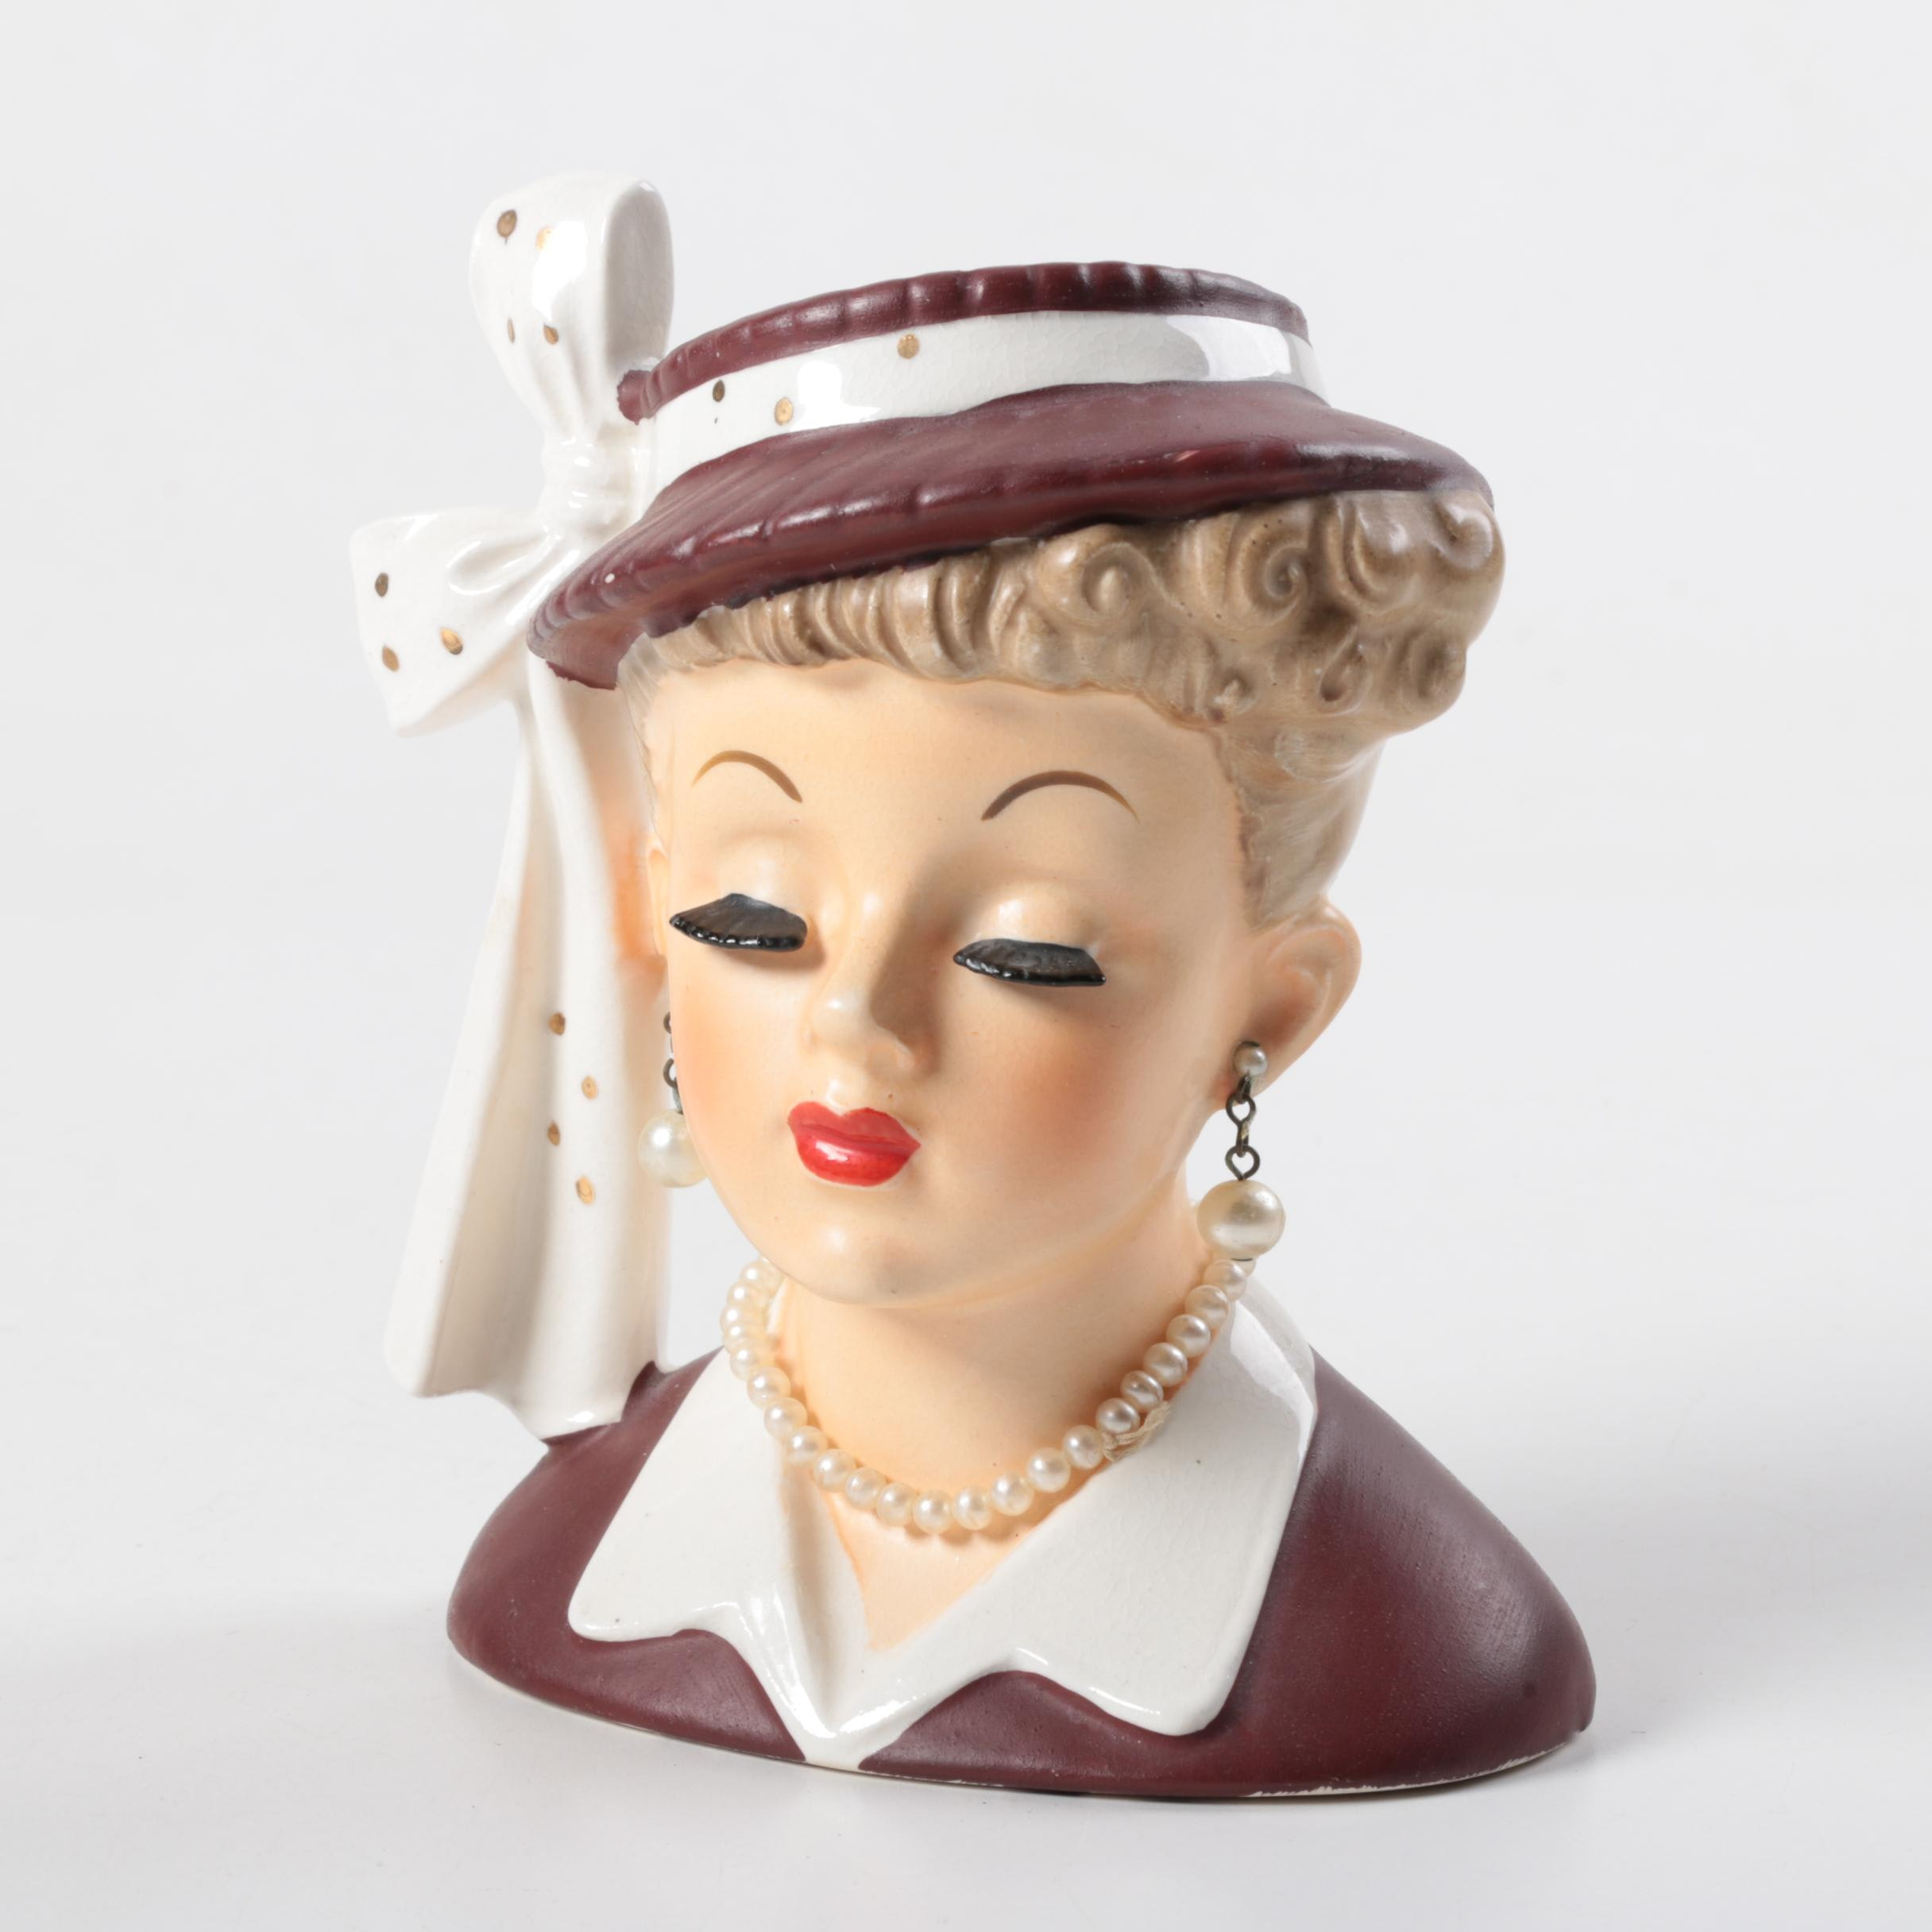 1956 Napco Lady Head Ceramic Vase